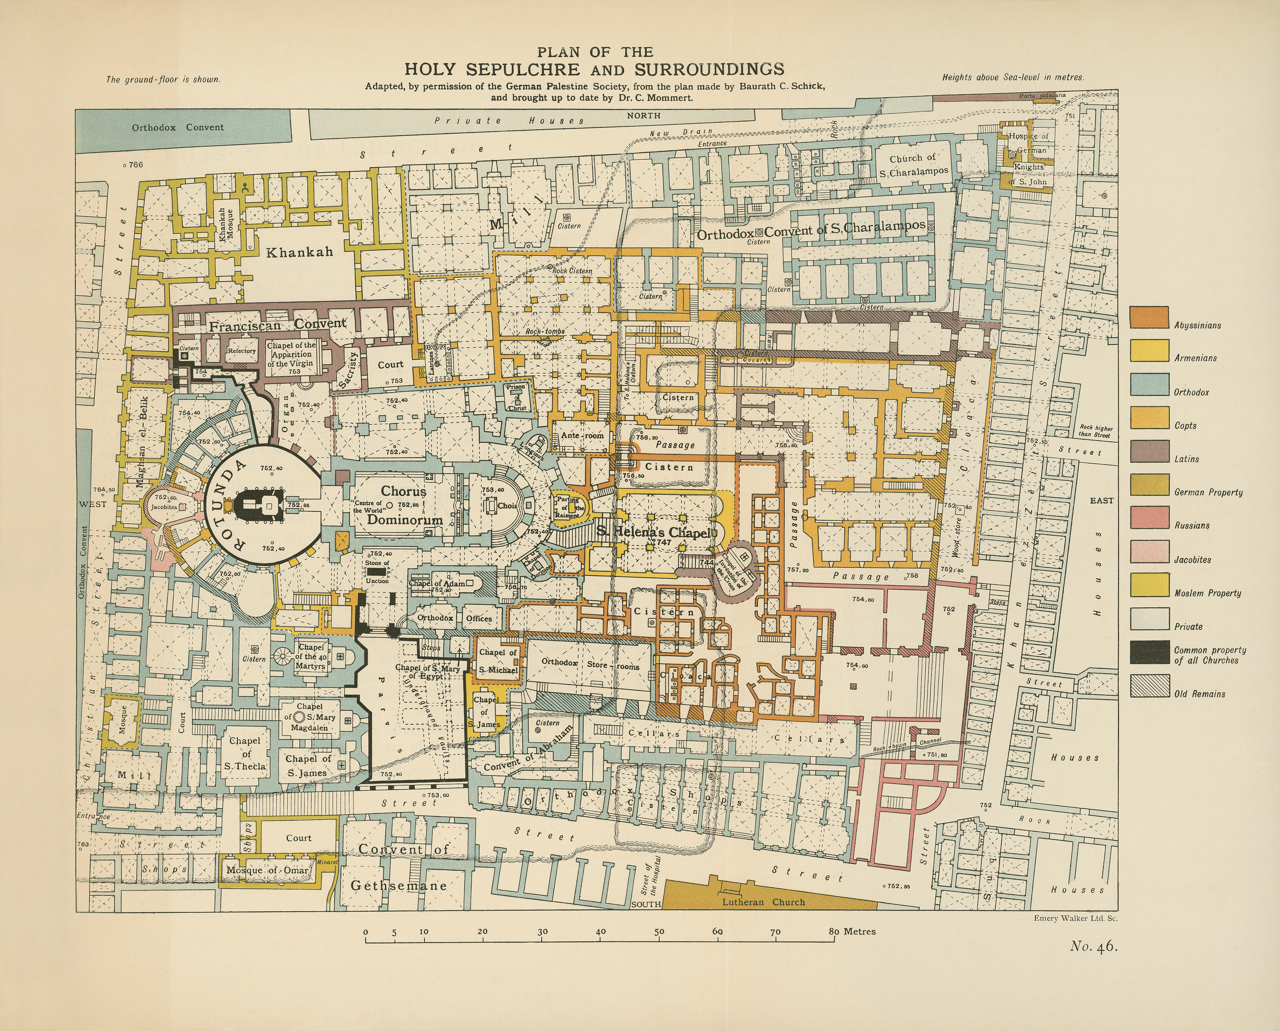 Conrad-S.-Schick-C.-Mommert-K.-Baedeker-Plan-of-the-Holy-Sepulchre-and-surroundings-1898-Courtesy-IAA-Israel-Architecture-Archive